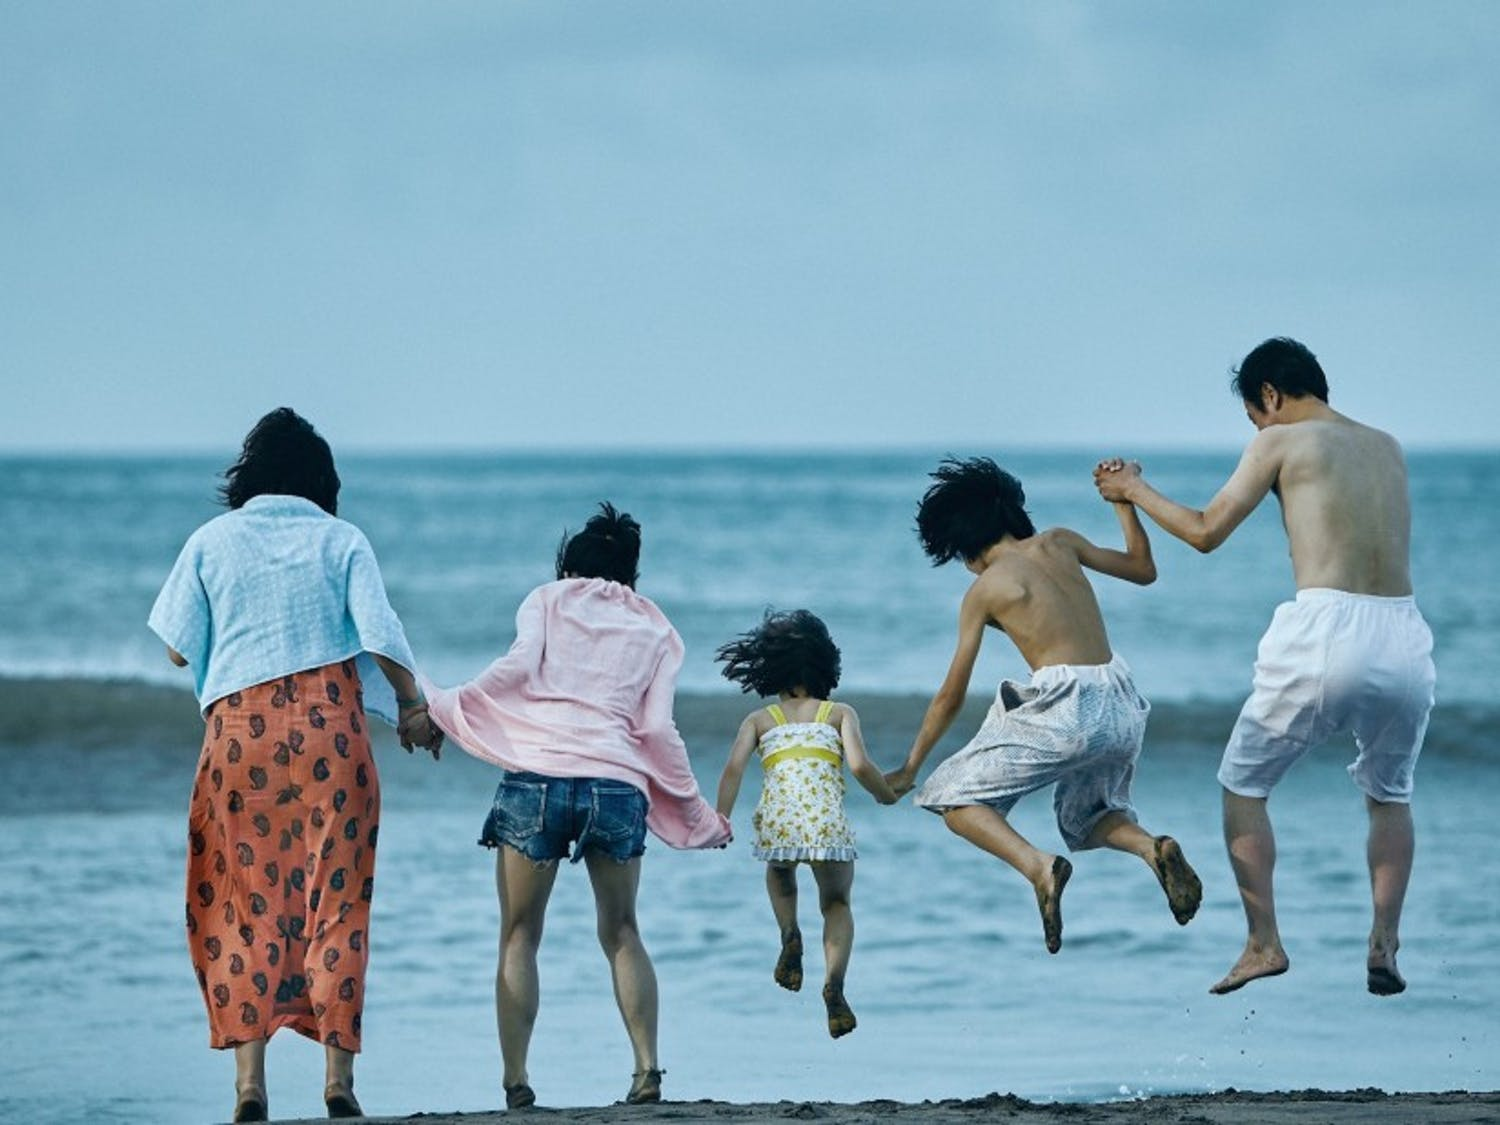 """""""Shoplifters"""" premiered May 13 at the Cannes Film Festival, and follows a makeshift family who relies on shoplifting to get by."""